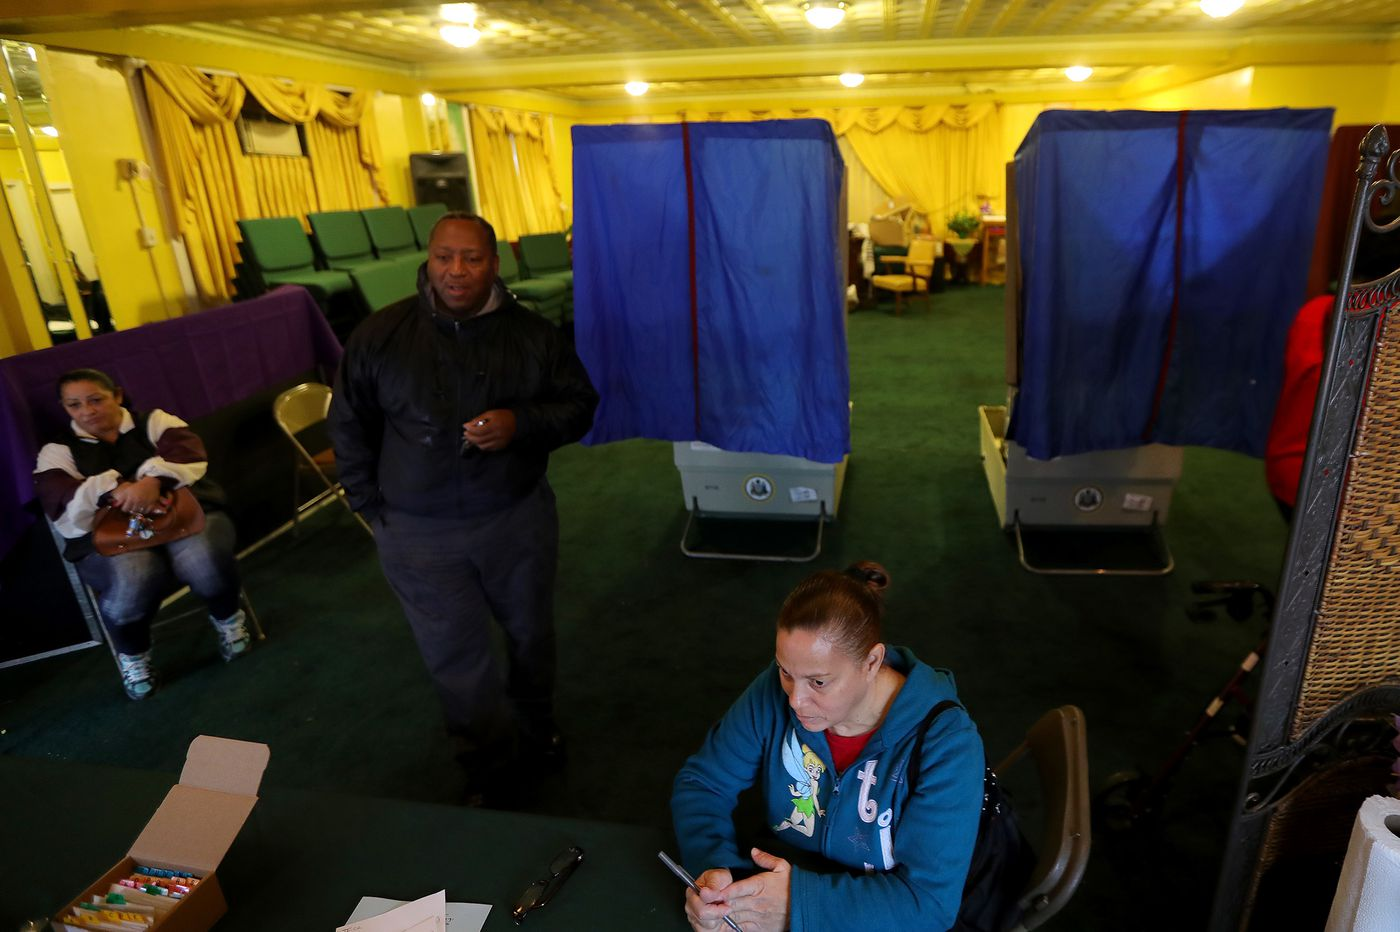 The election is done, but improving voting in the state isn't over | Editorial